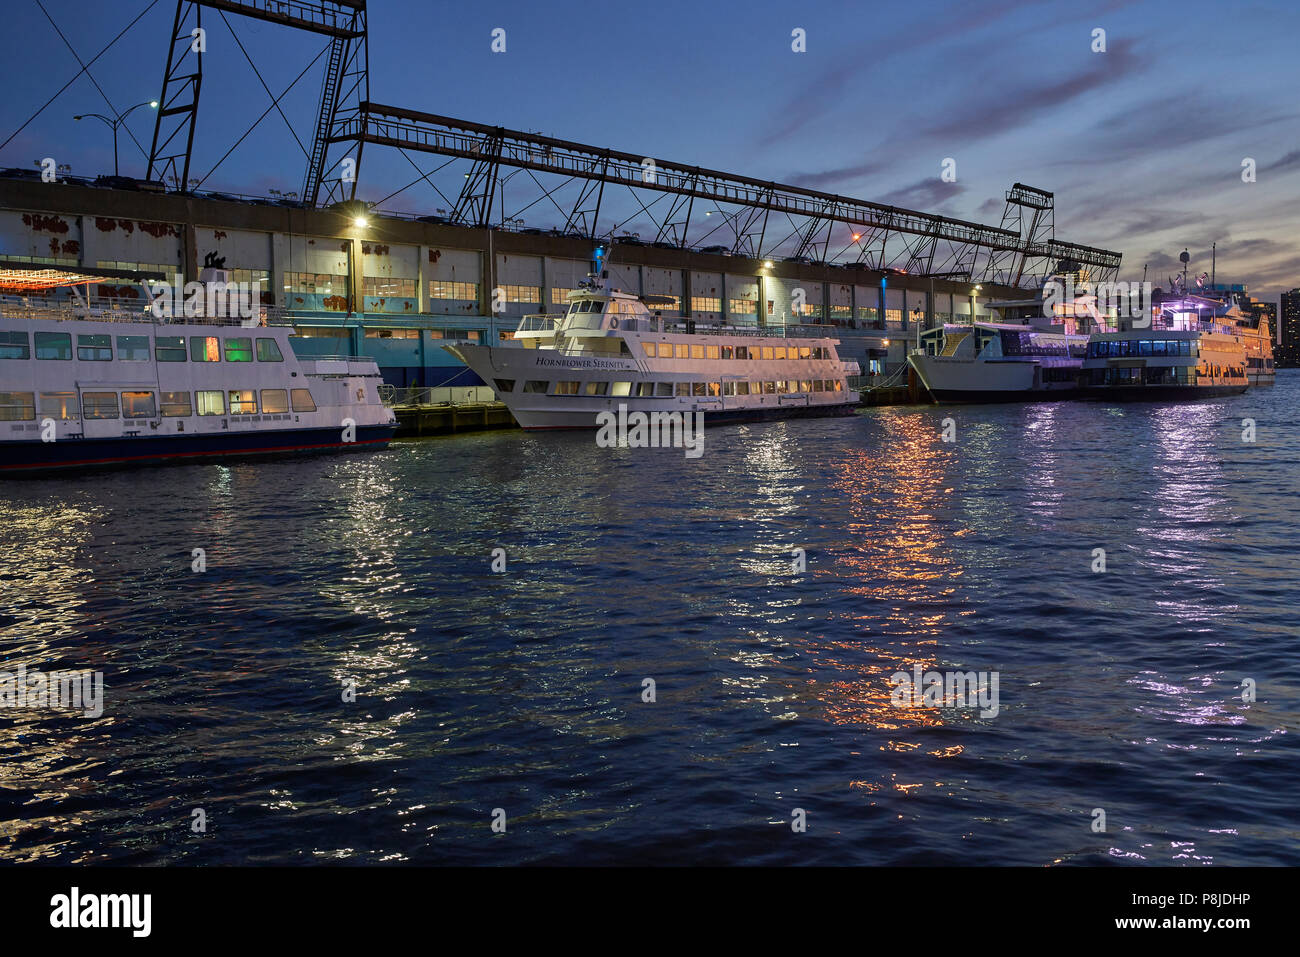 yachts docked at dusk, Hudson River Park, pier 40 in New York City - Stock Image